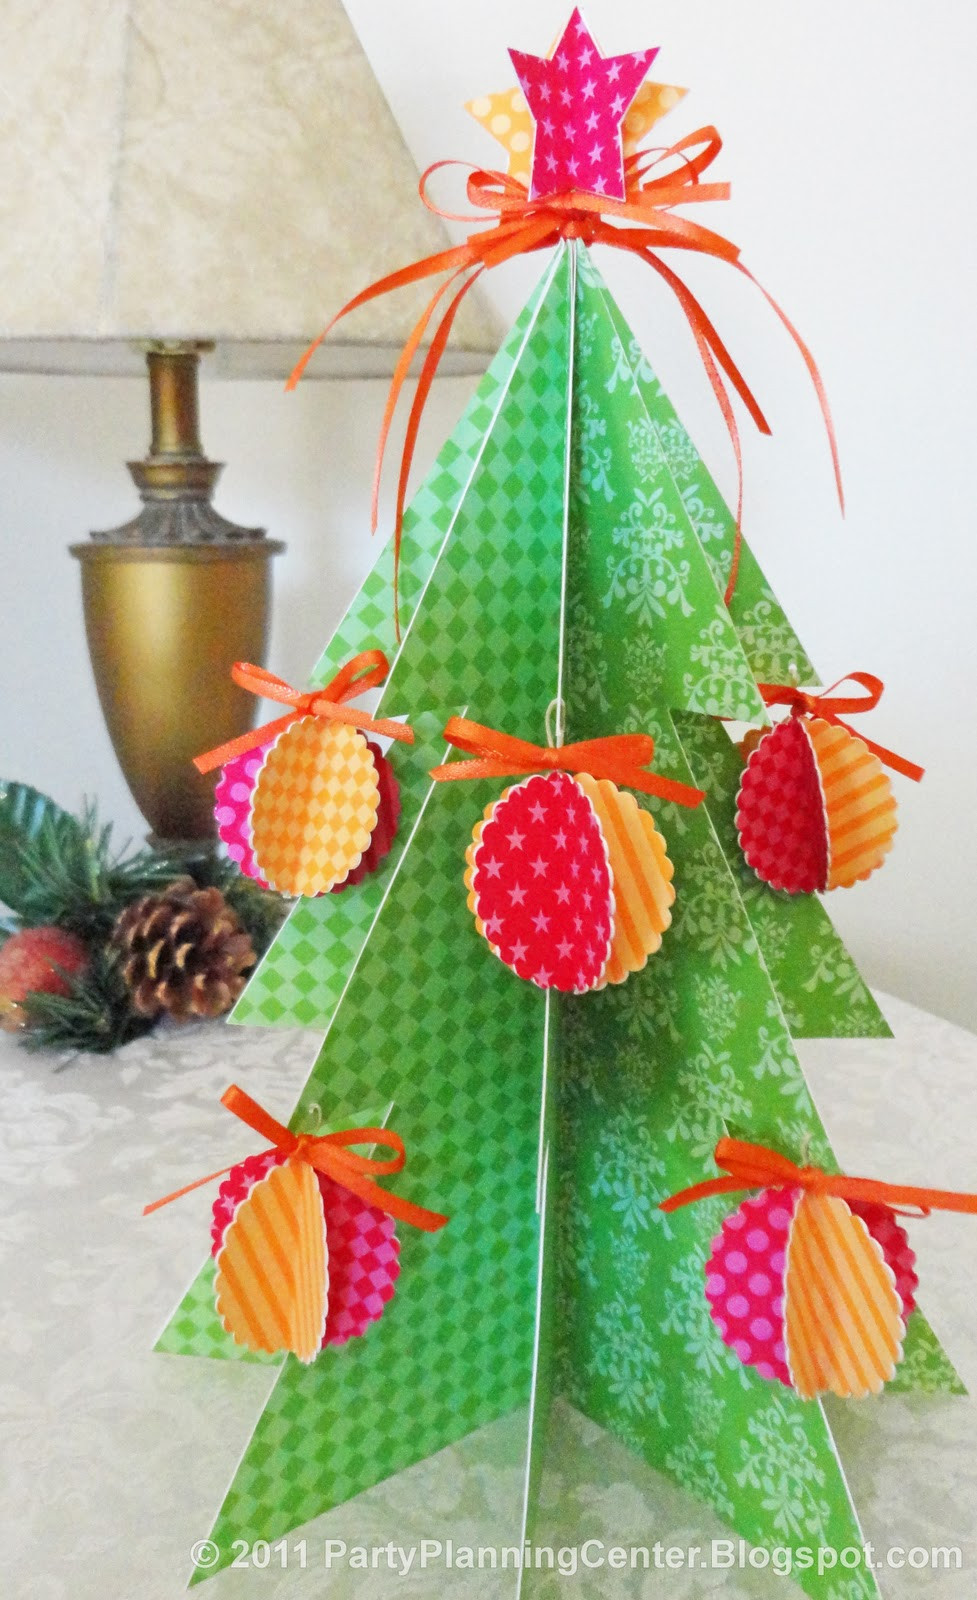 Christmas Tree ornaments to Make Luxury Party Planning Center Free Printable Paper Christmas Tree Of Amazing 45 Images Christmas Tree ornaments to Make